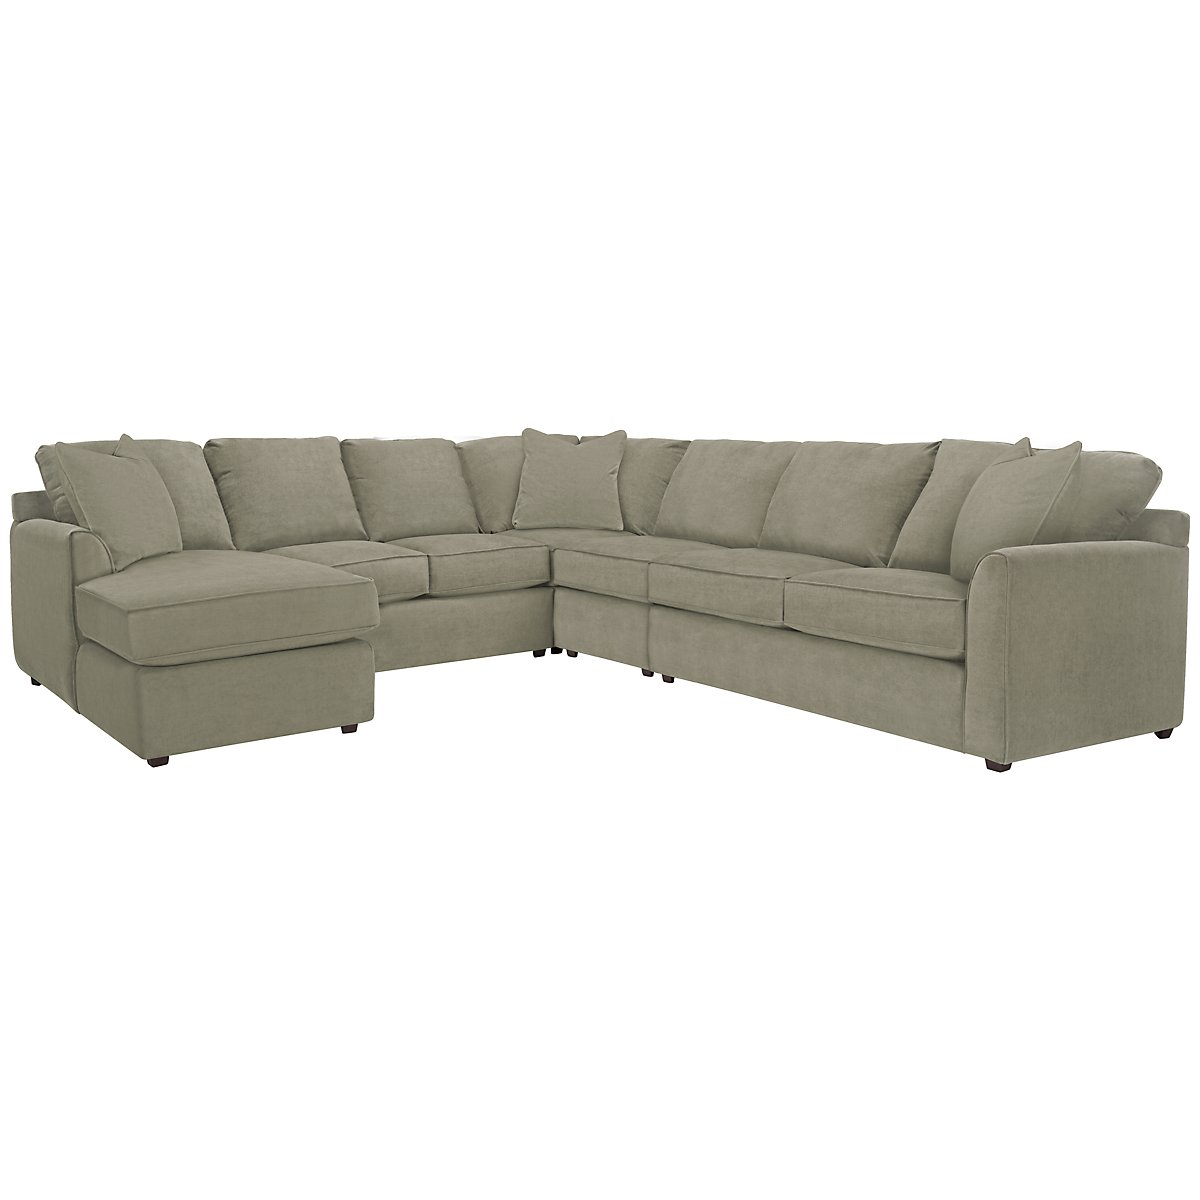 Express3 Lt Green Microfiber Large Left Chaise Sectional